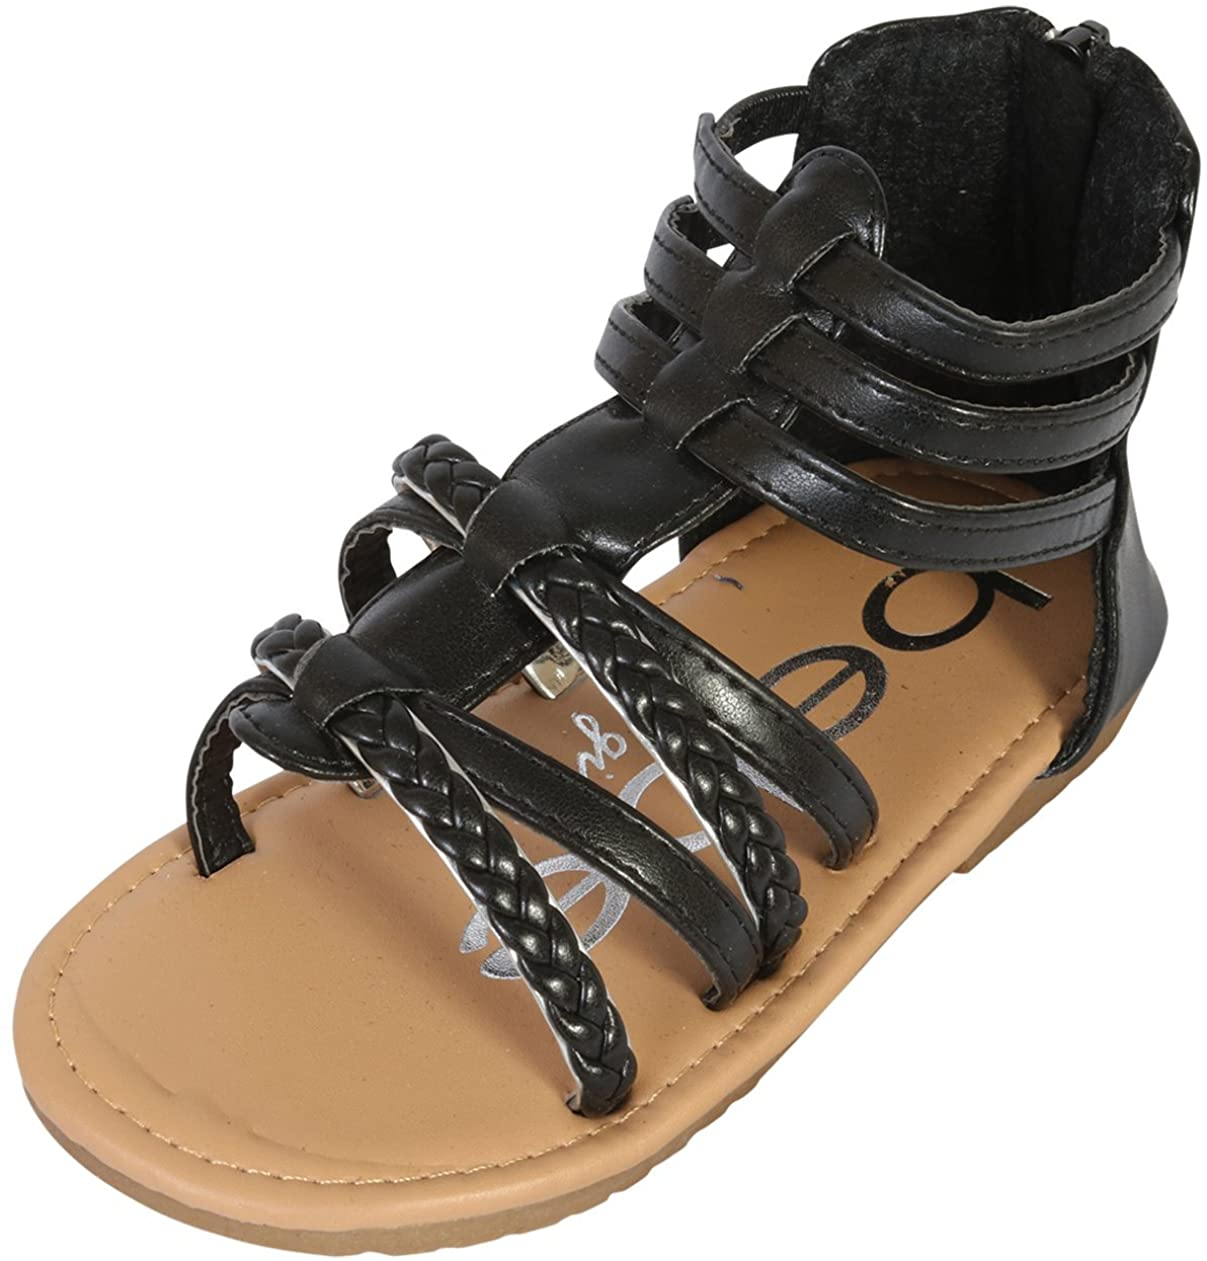 bebe Girls Gladiator Sandals with Glitter Braided Straps (Toddler)